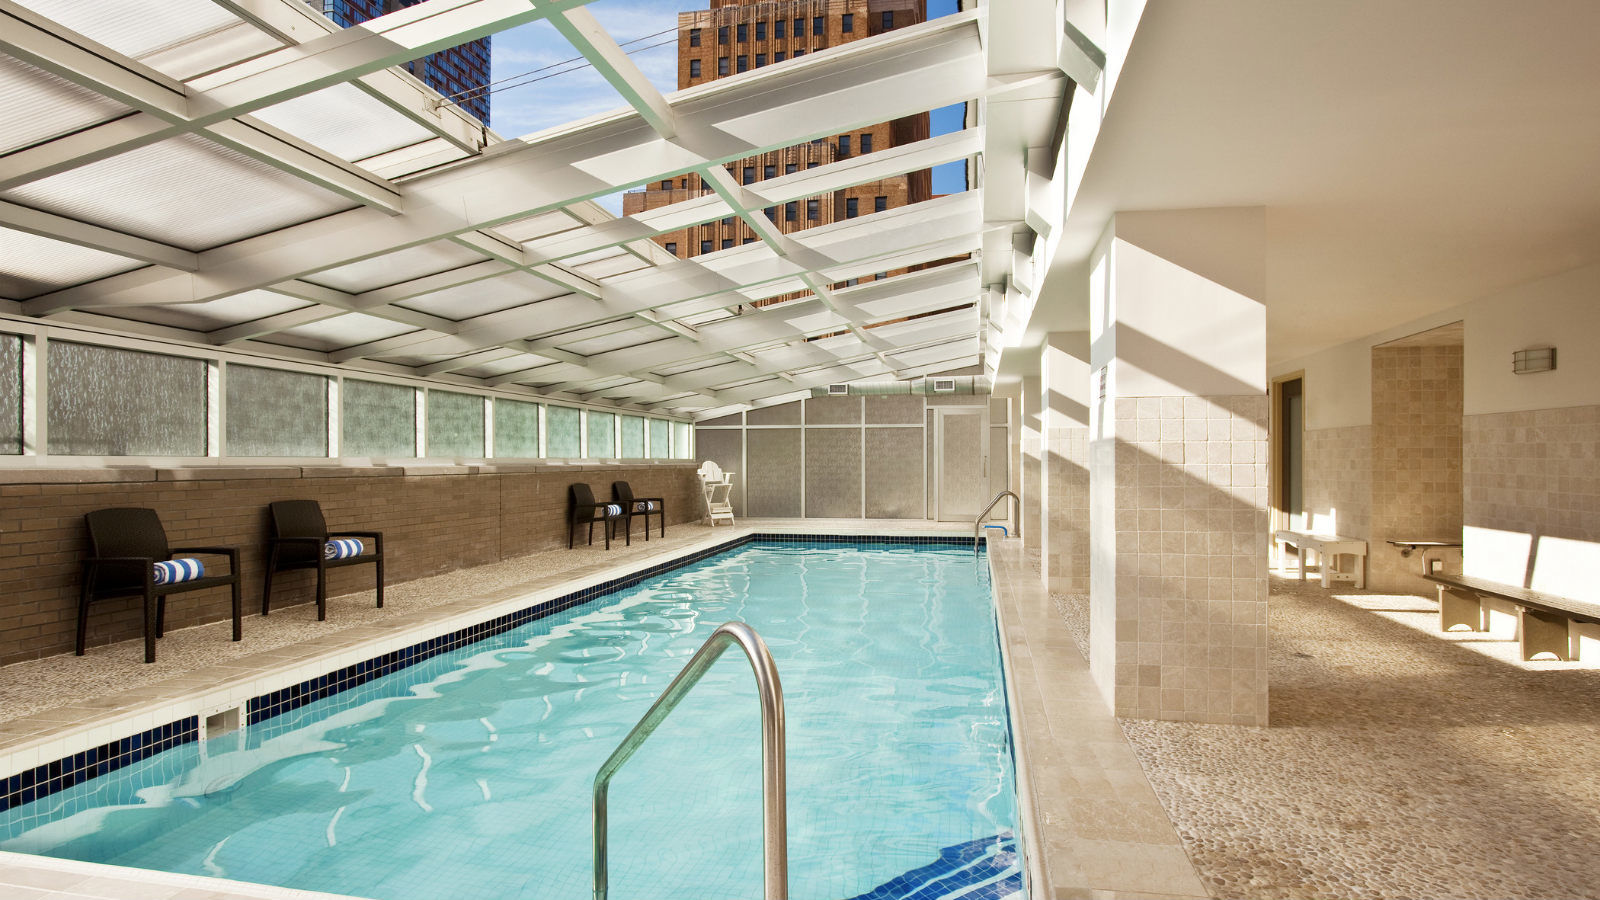 Brooklyn Hotel Features - Sheraton Brooklyn Hotel Pool